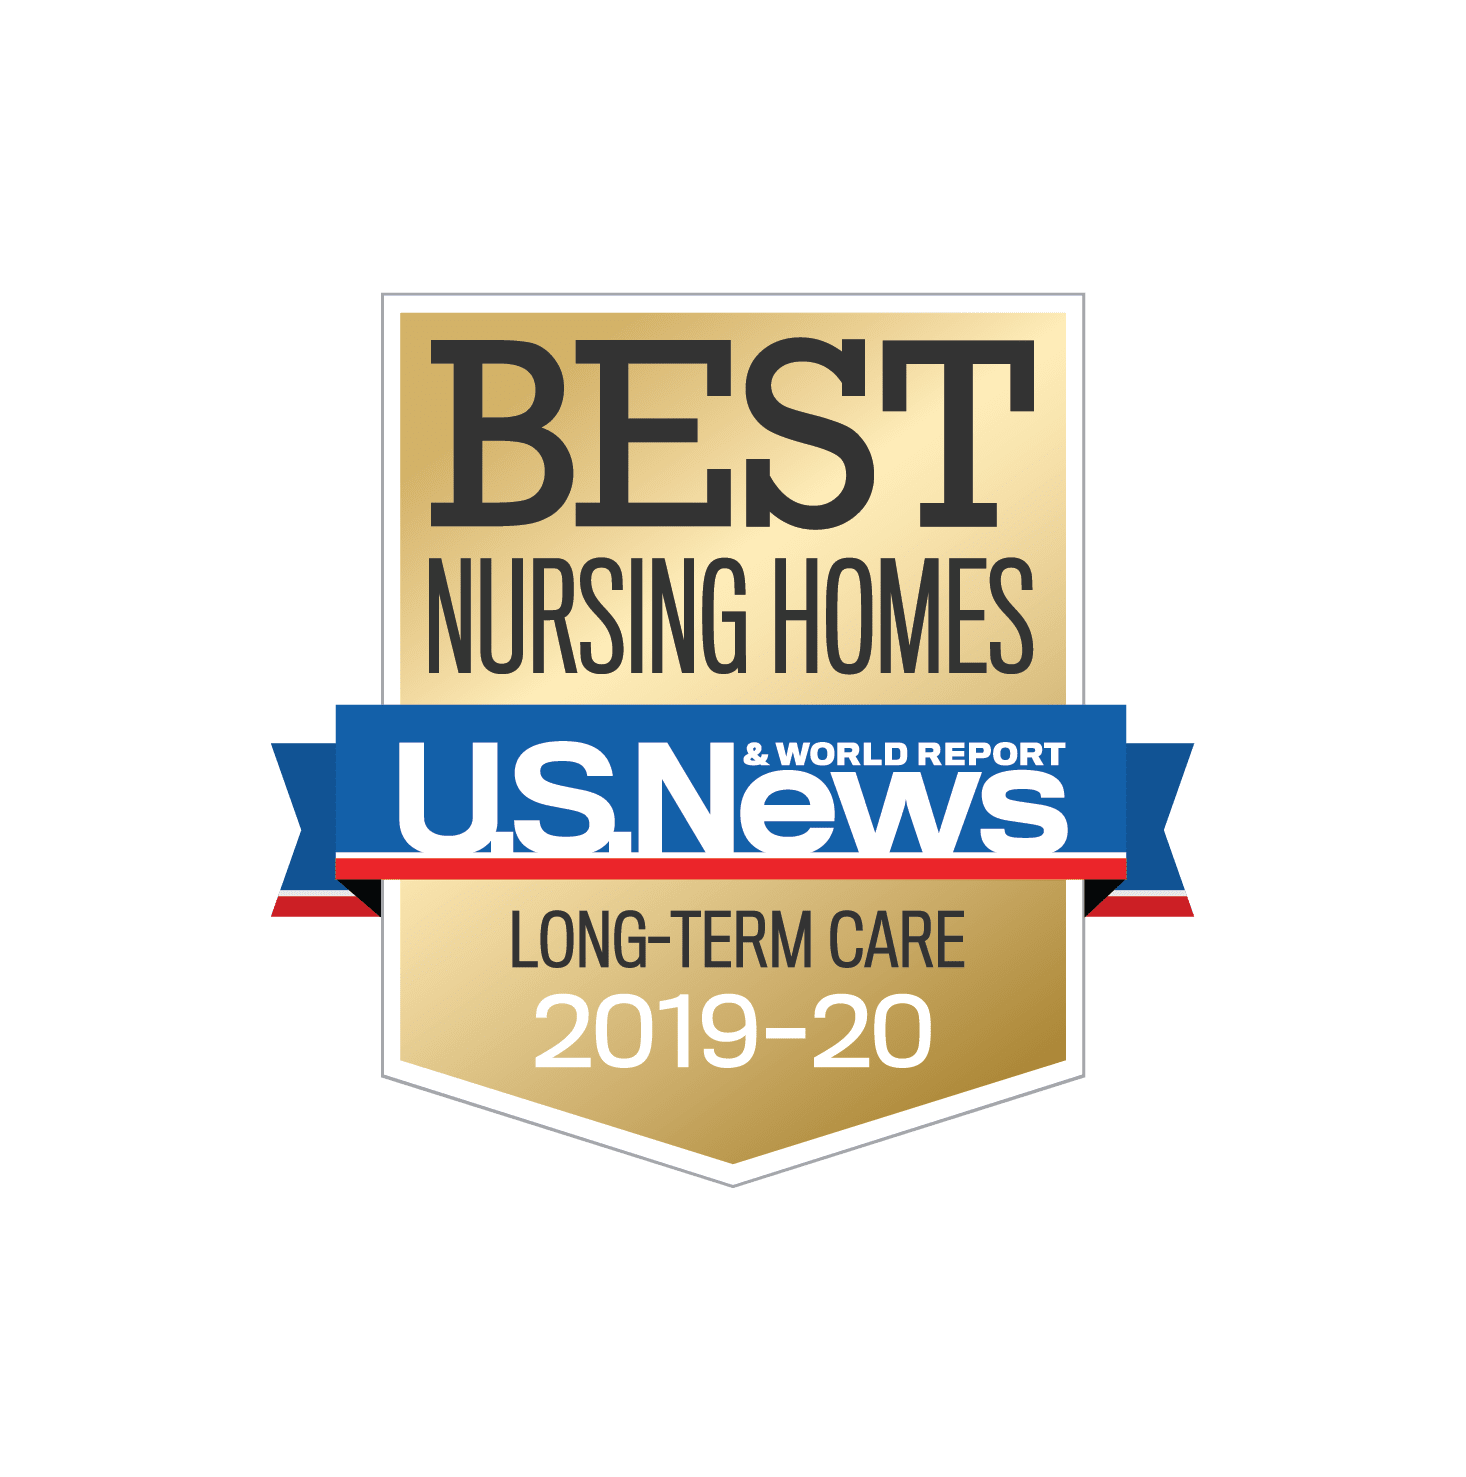 U.S. News and World Report Long Term Care badge